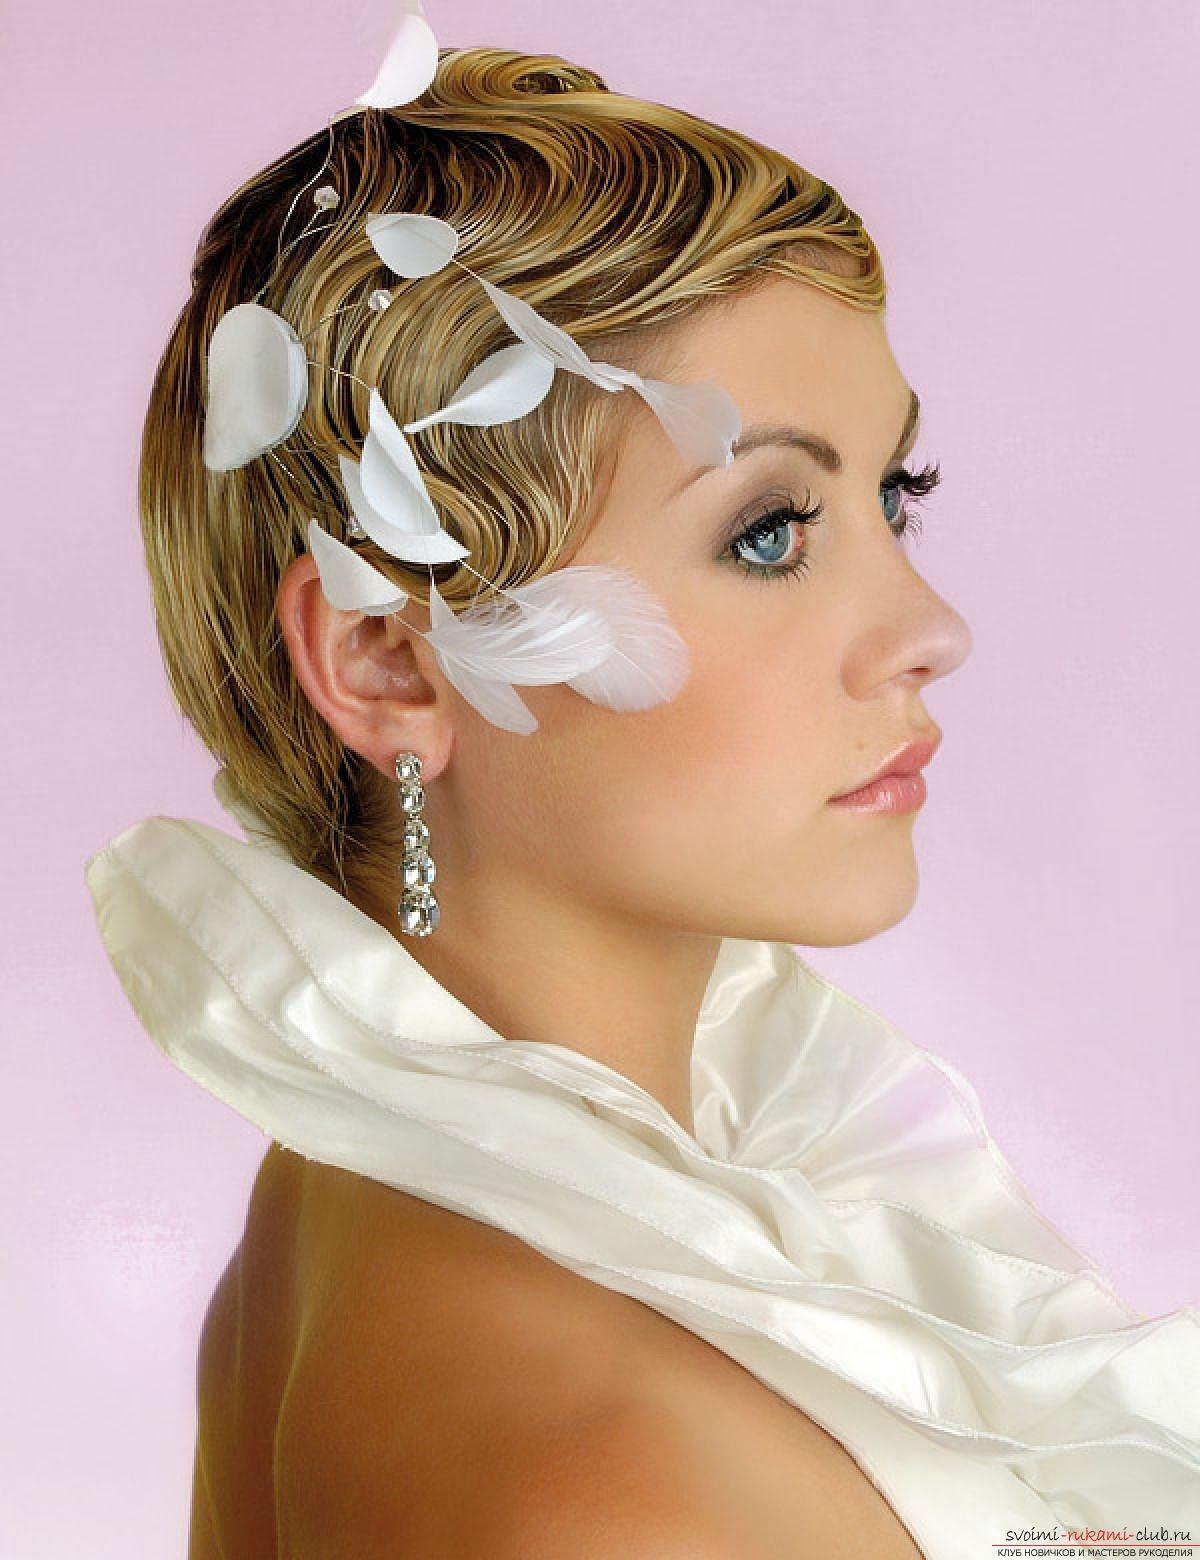 Hairstyles for brides for short hair. Photo №1